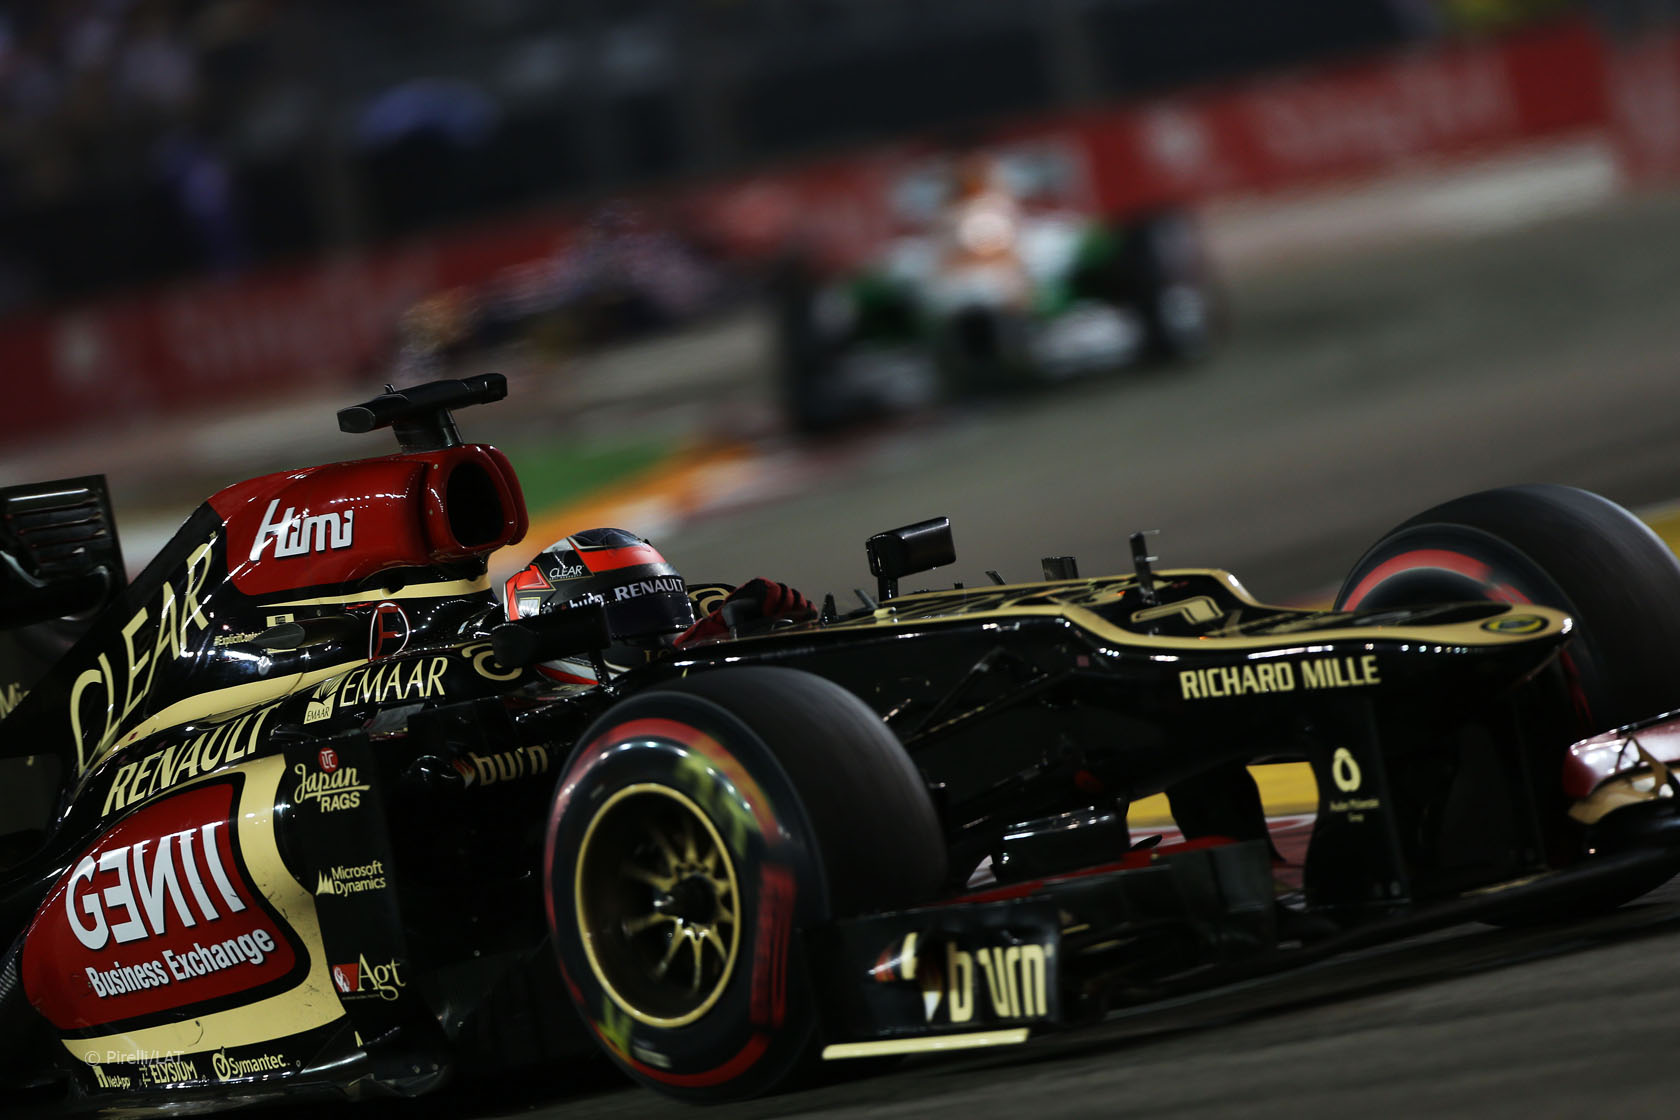 F1 2013: Singapore Grand Prix - Driver Of The Day - The ...